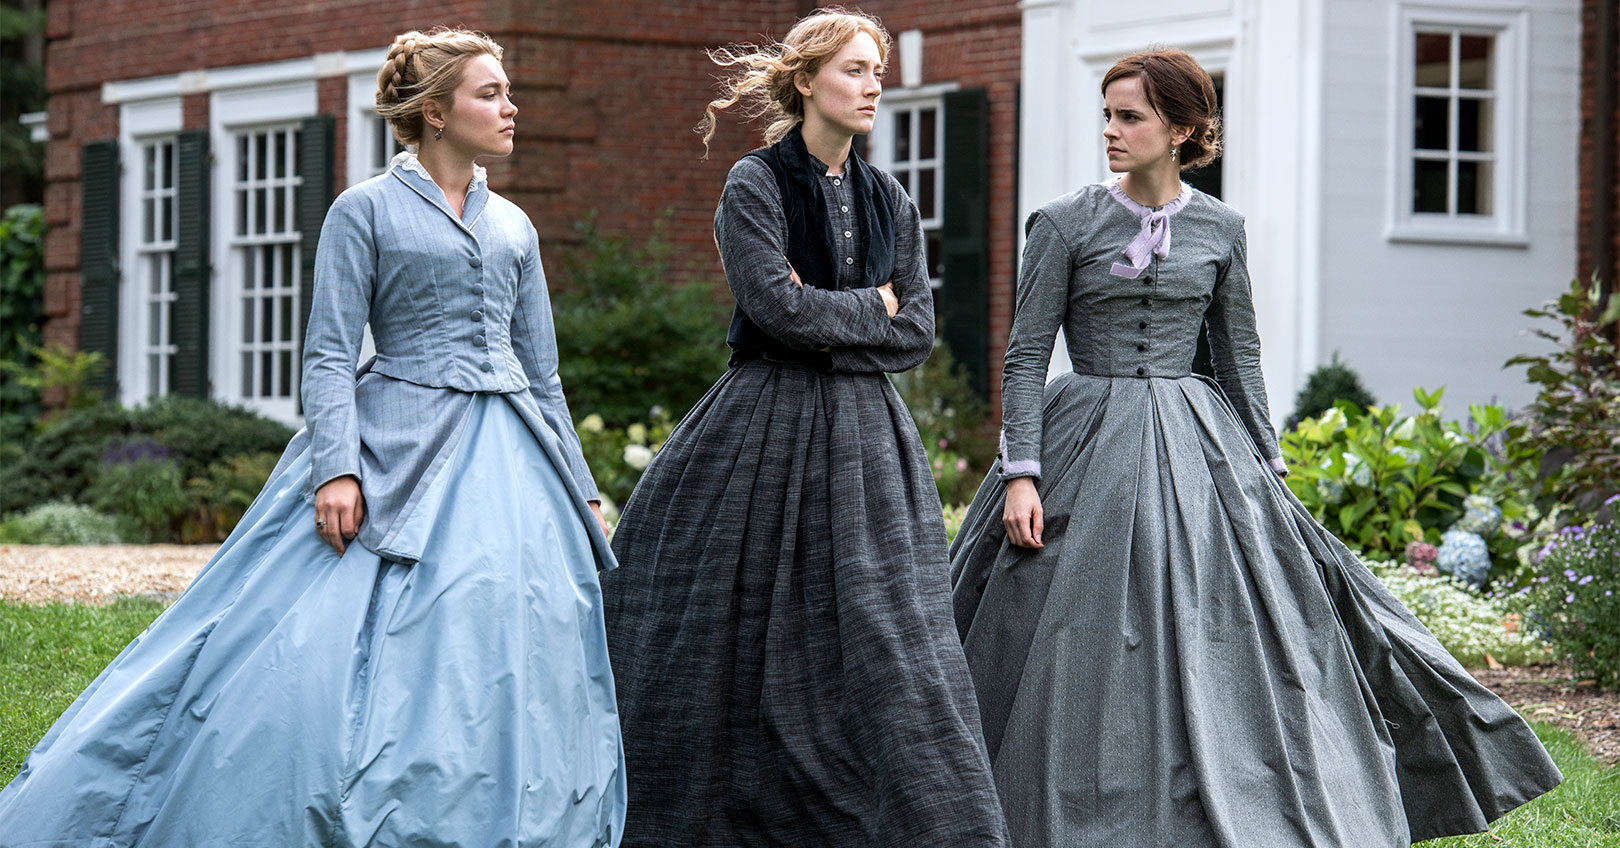 Little Women - Florence Pugh, Saoirse Ronan, and Emma Watson